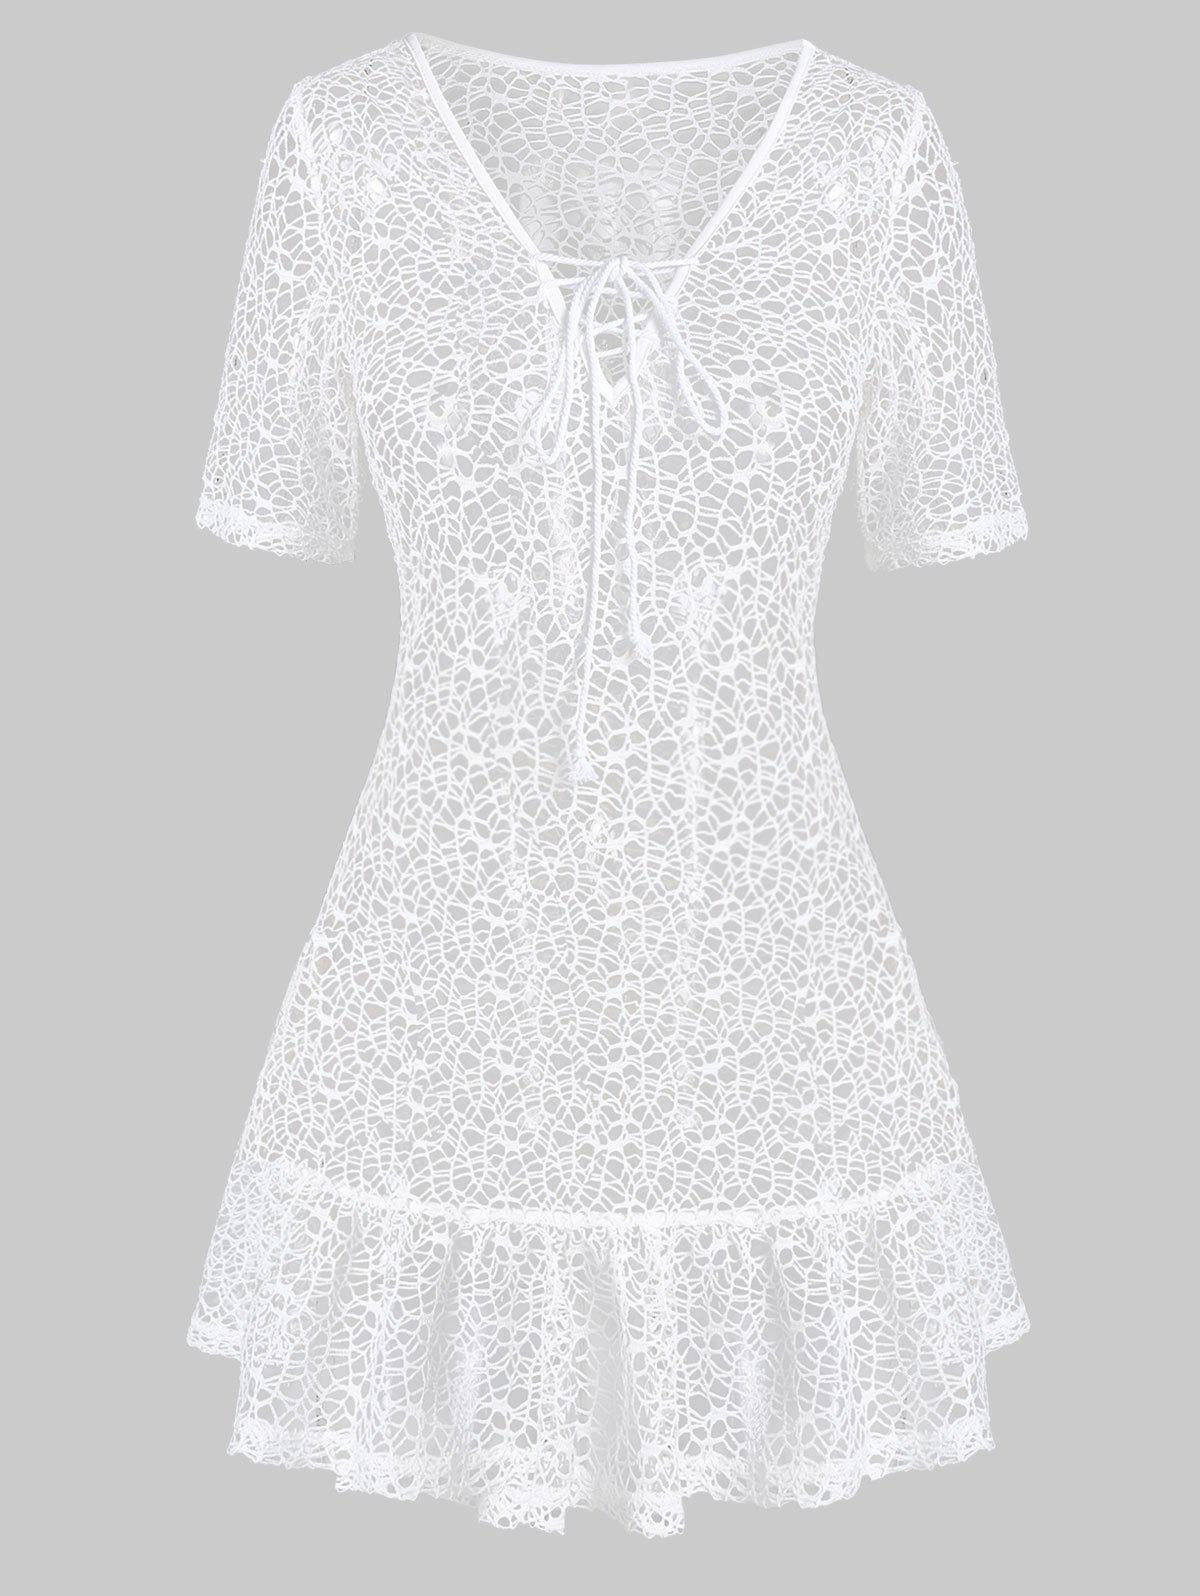 Online Lace Up Drop Waist Sheer Cover Up Dress